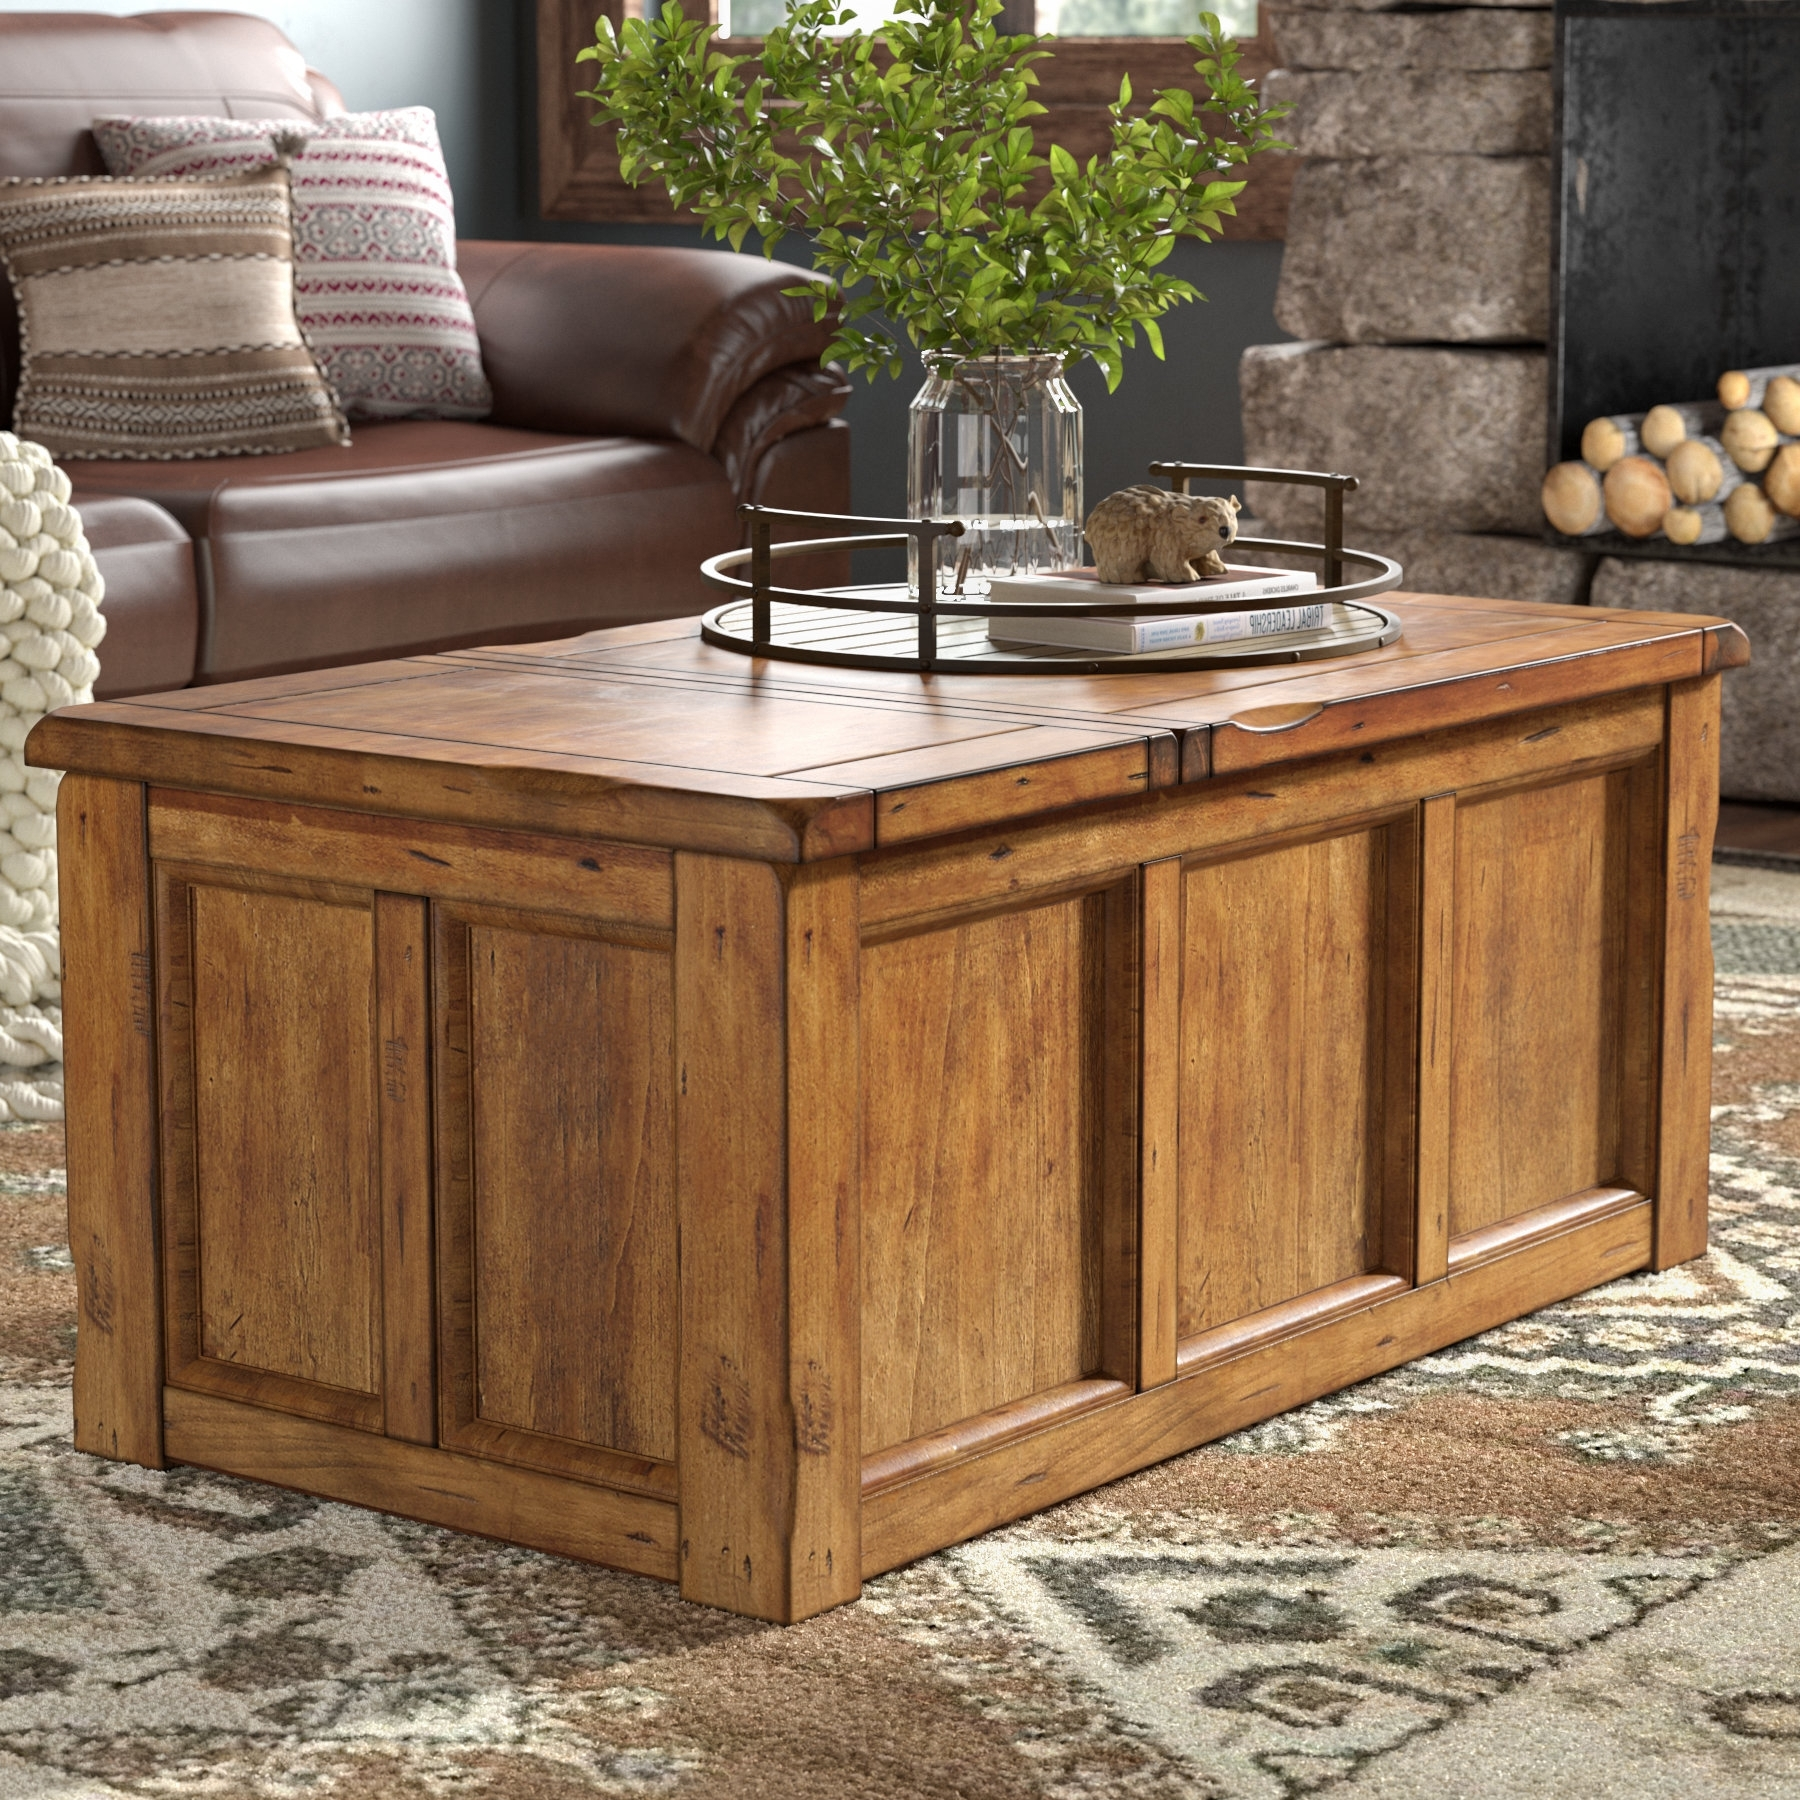 Most Current Chiseled Edge Coffee Tables In Laurel Foundry Modern Farmhouse Baggarly Coffee Table With Lift Top (View 20 of 20)